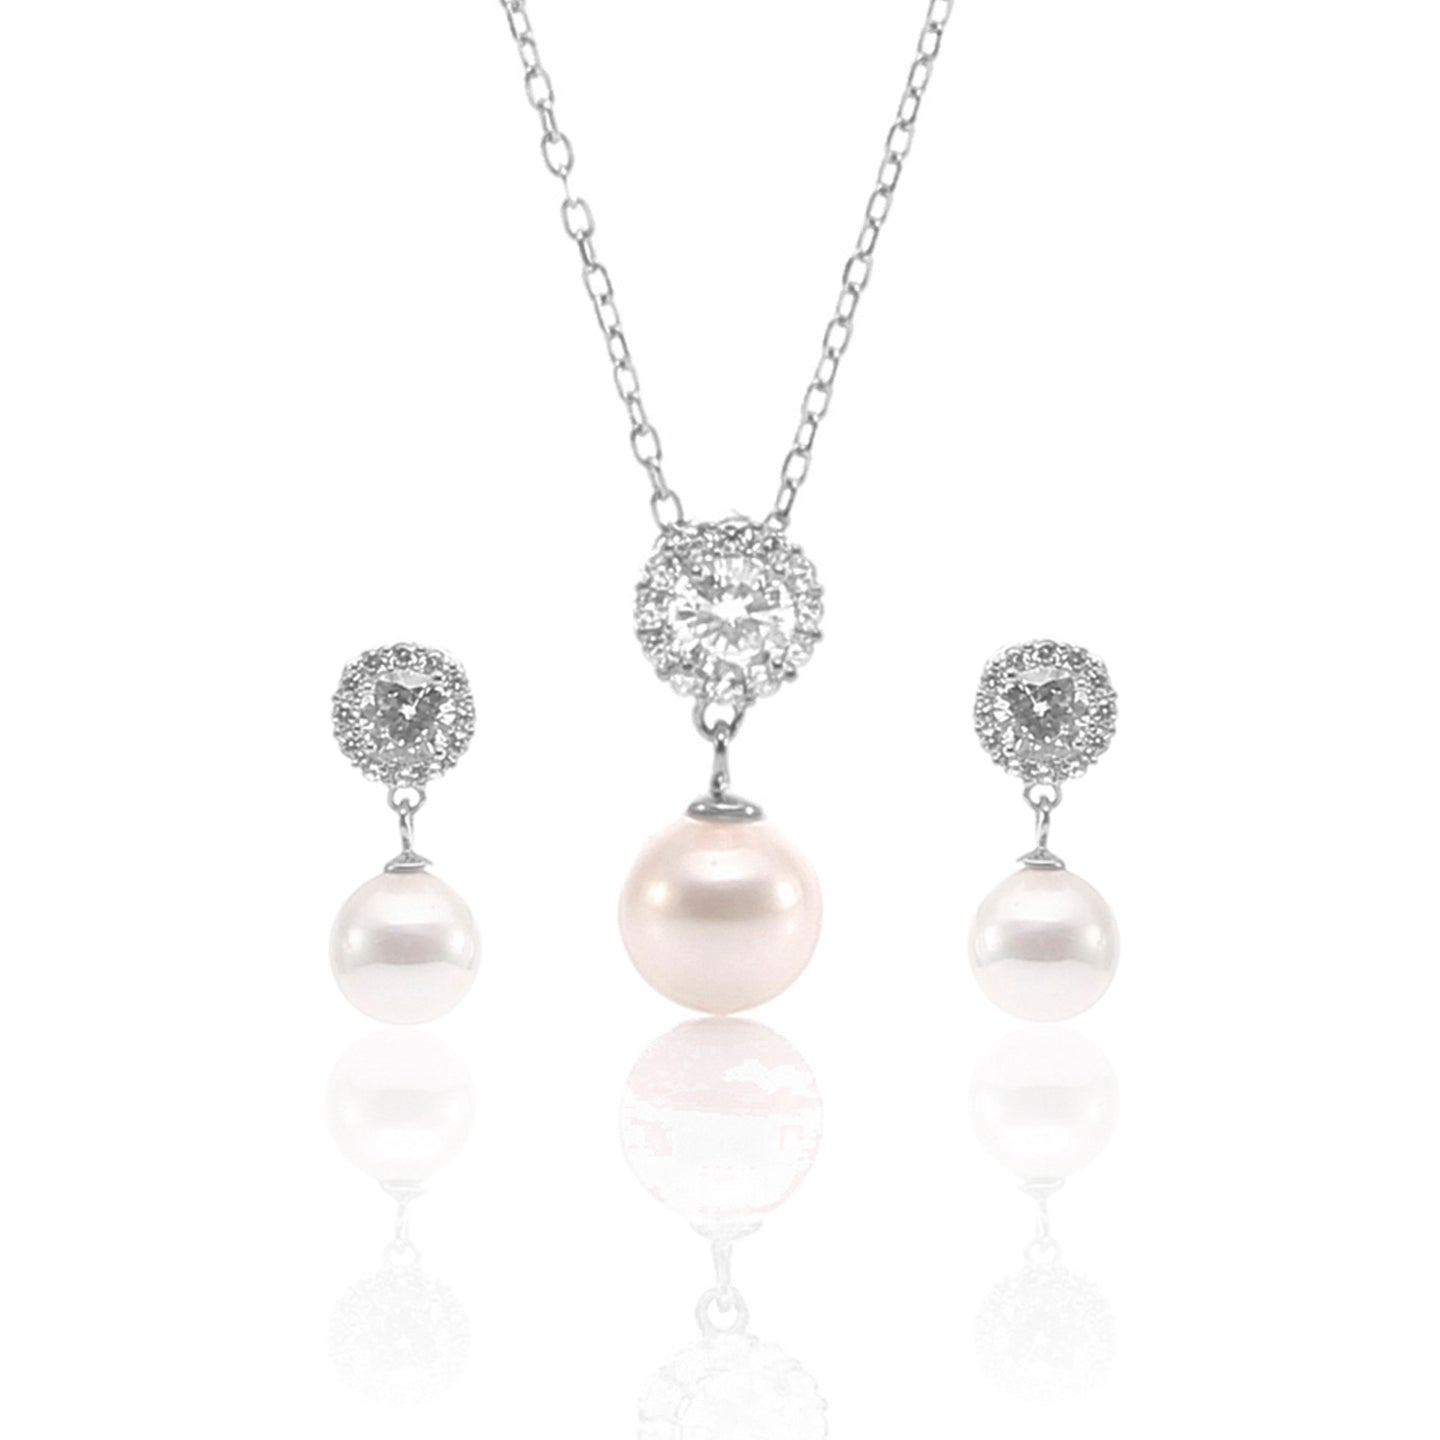 Pearl Teardrop Pendant Necklace and Earrings Set - ARJW1027RD - ARCADIO LIFESTYLE